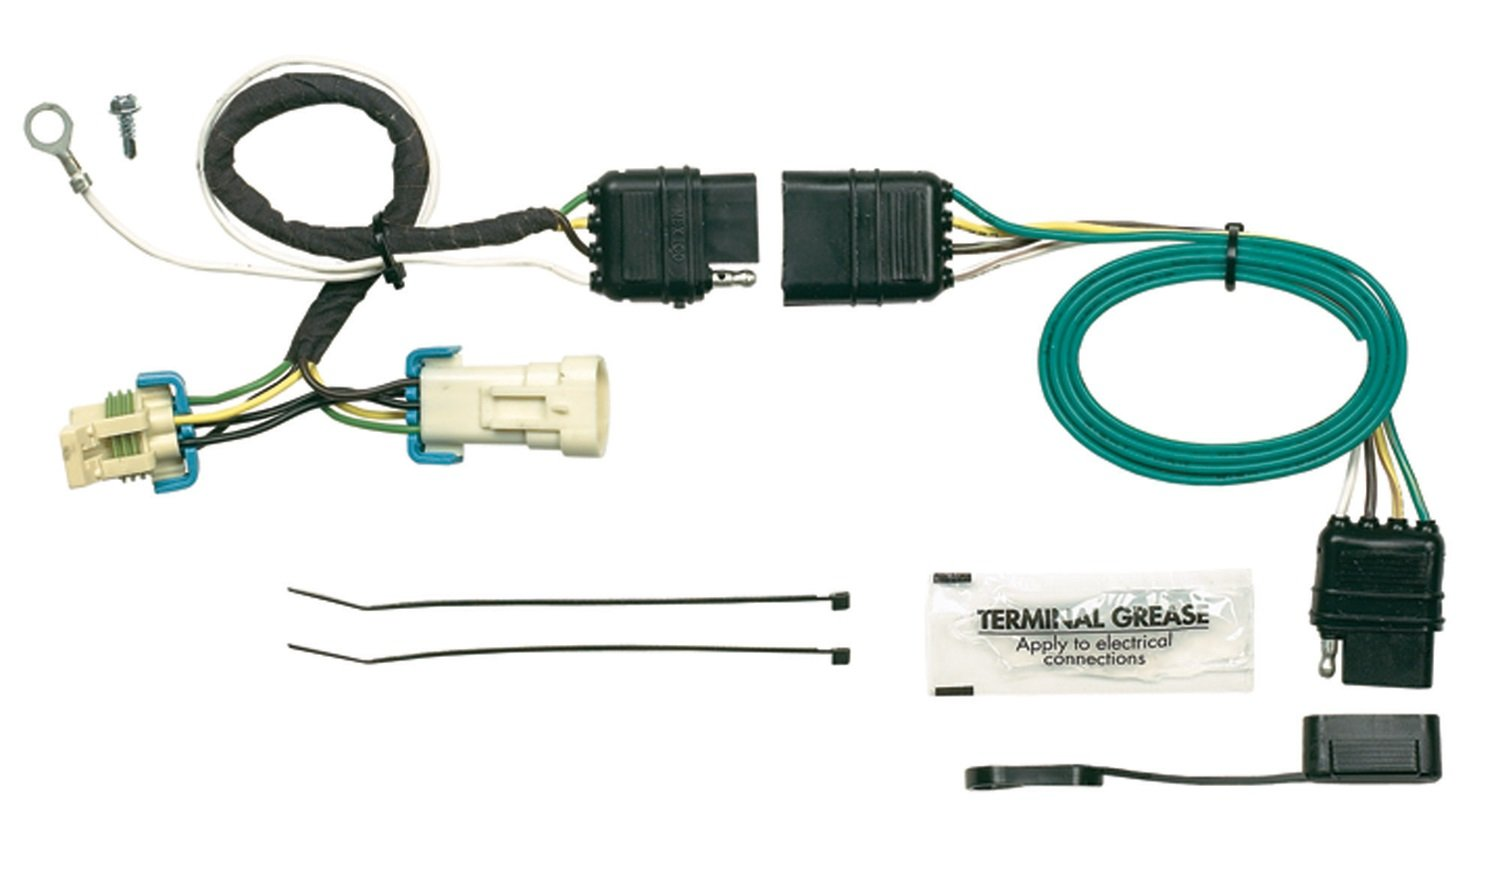 618X6OJbTkL._SL1500_ amazon com hopkins 41135 plug in simple vehicle wiring kit Plug in Trailer Wiring Kits at mifinder.co